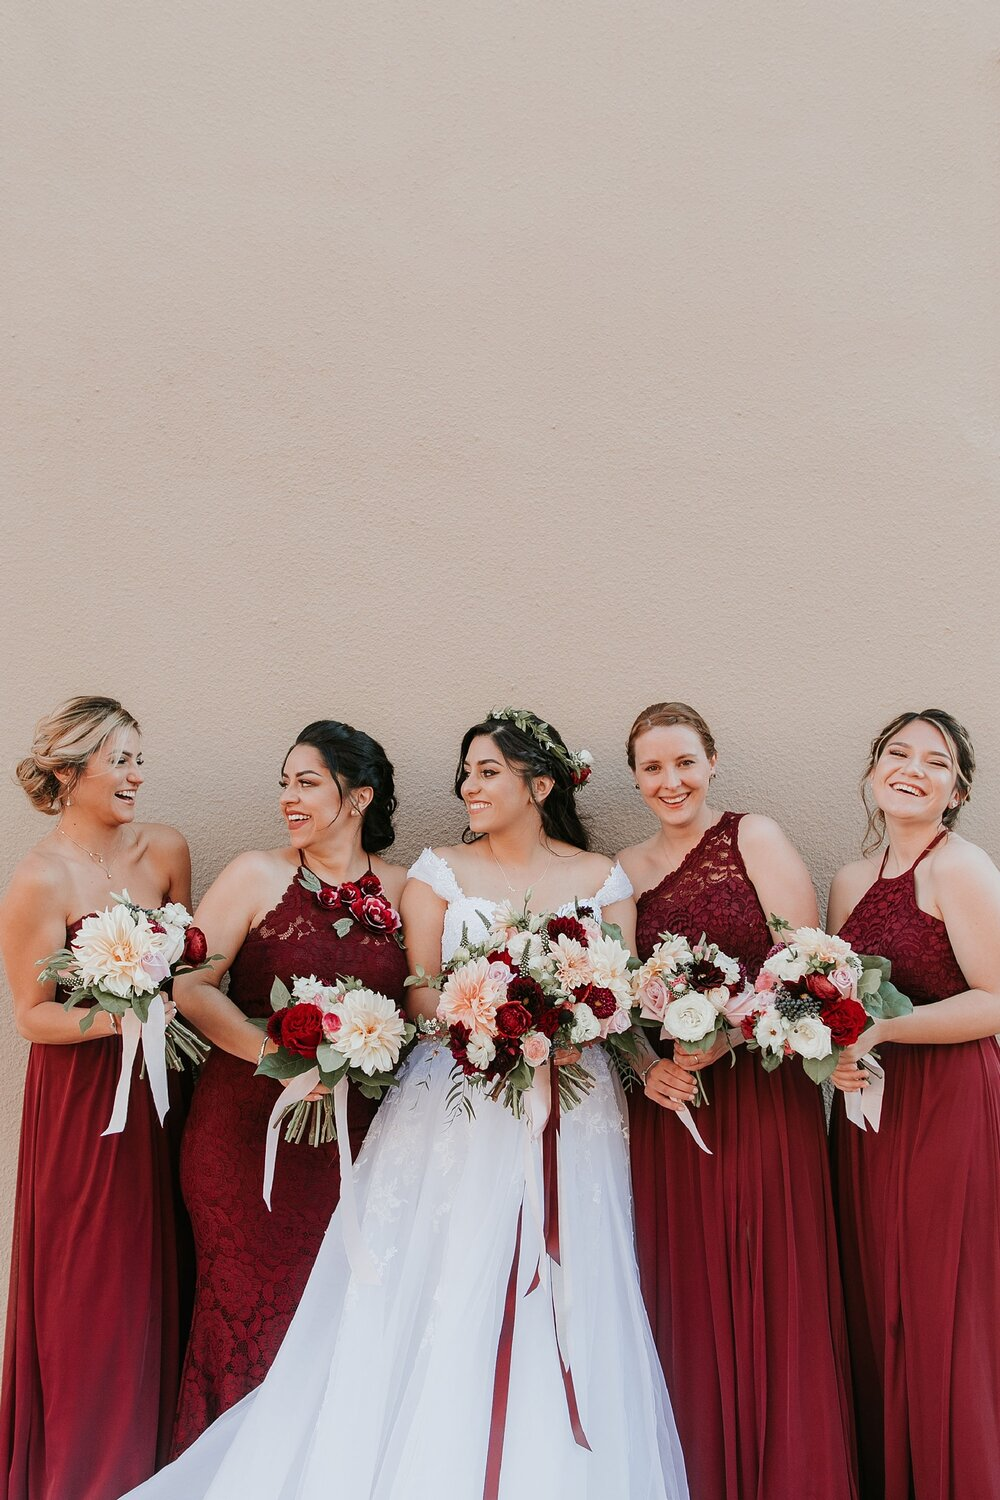 Alicia+lucia+photography+-+albuquerque+wedding+photographer+-+santa+fe+wedding+photography+-+new+mexico+wedding+photographer+-+new+mexico+wedding+-+fall+wedding+-+fall+wedding+florals+-+wedding+florals_0071.jpg